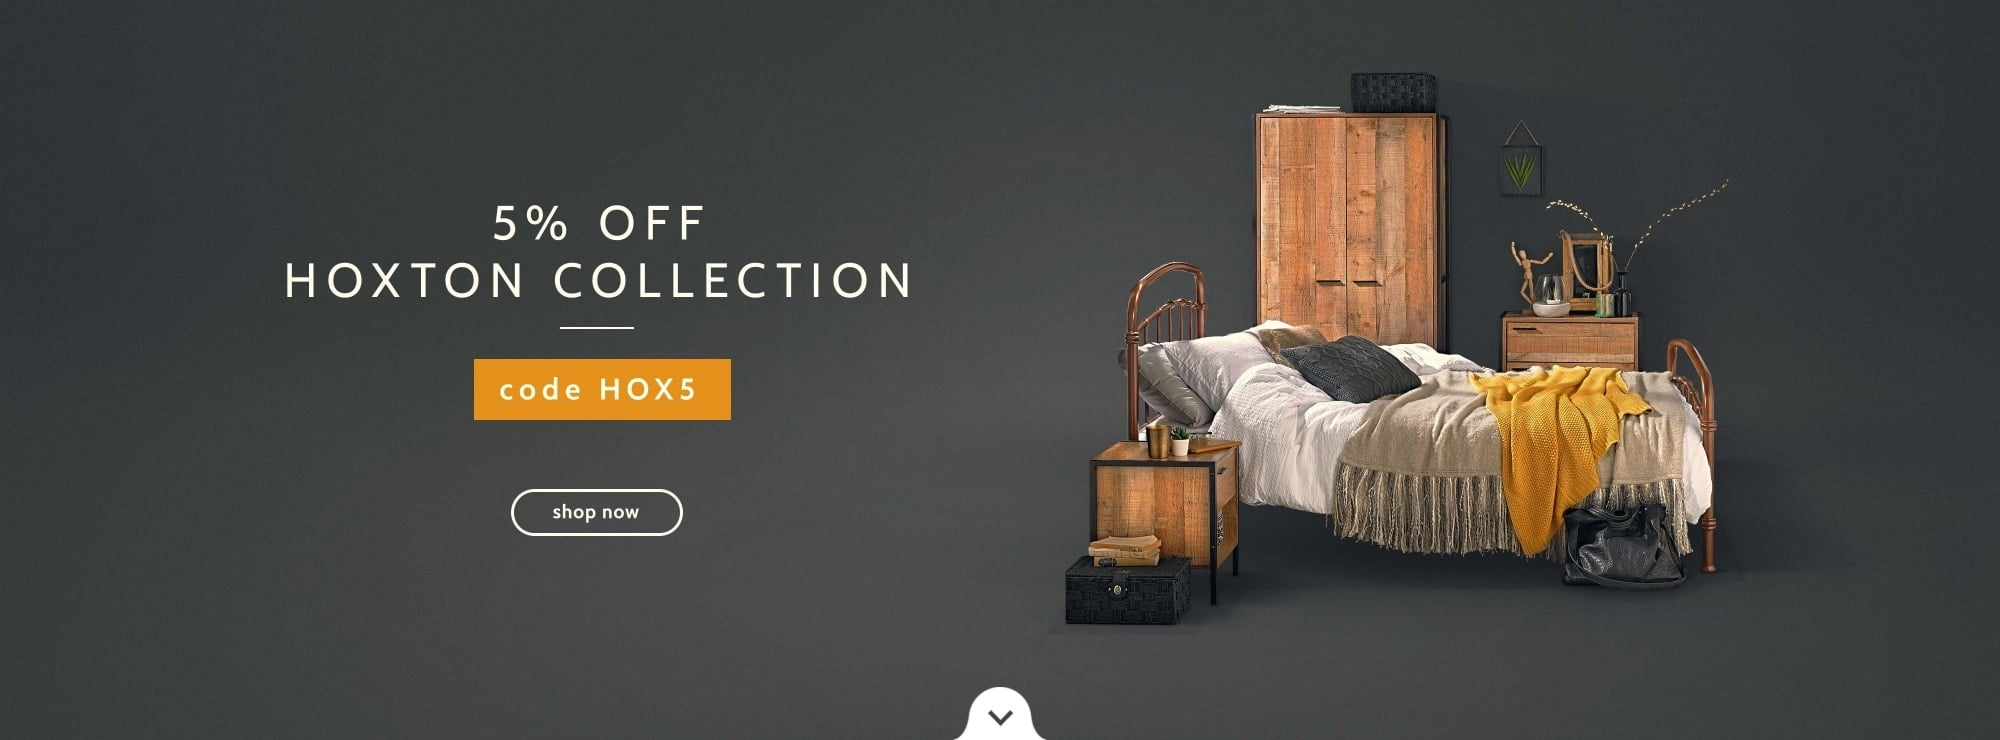 5% off Hoxton furniture collection